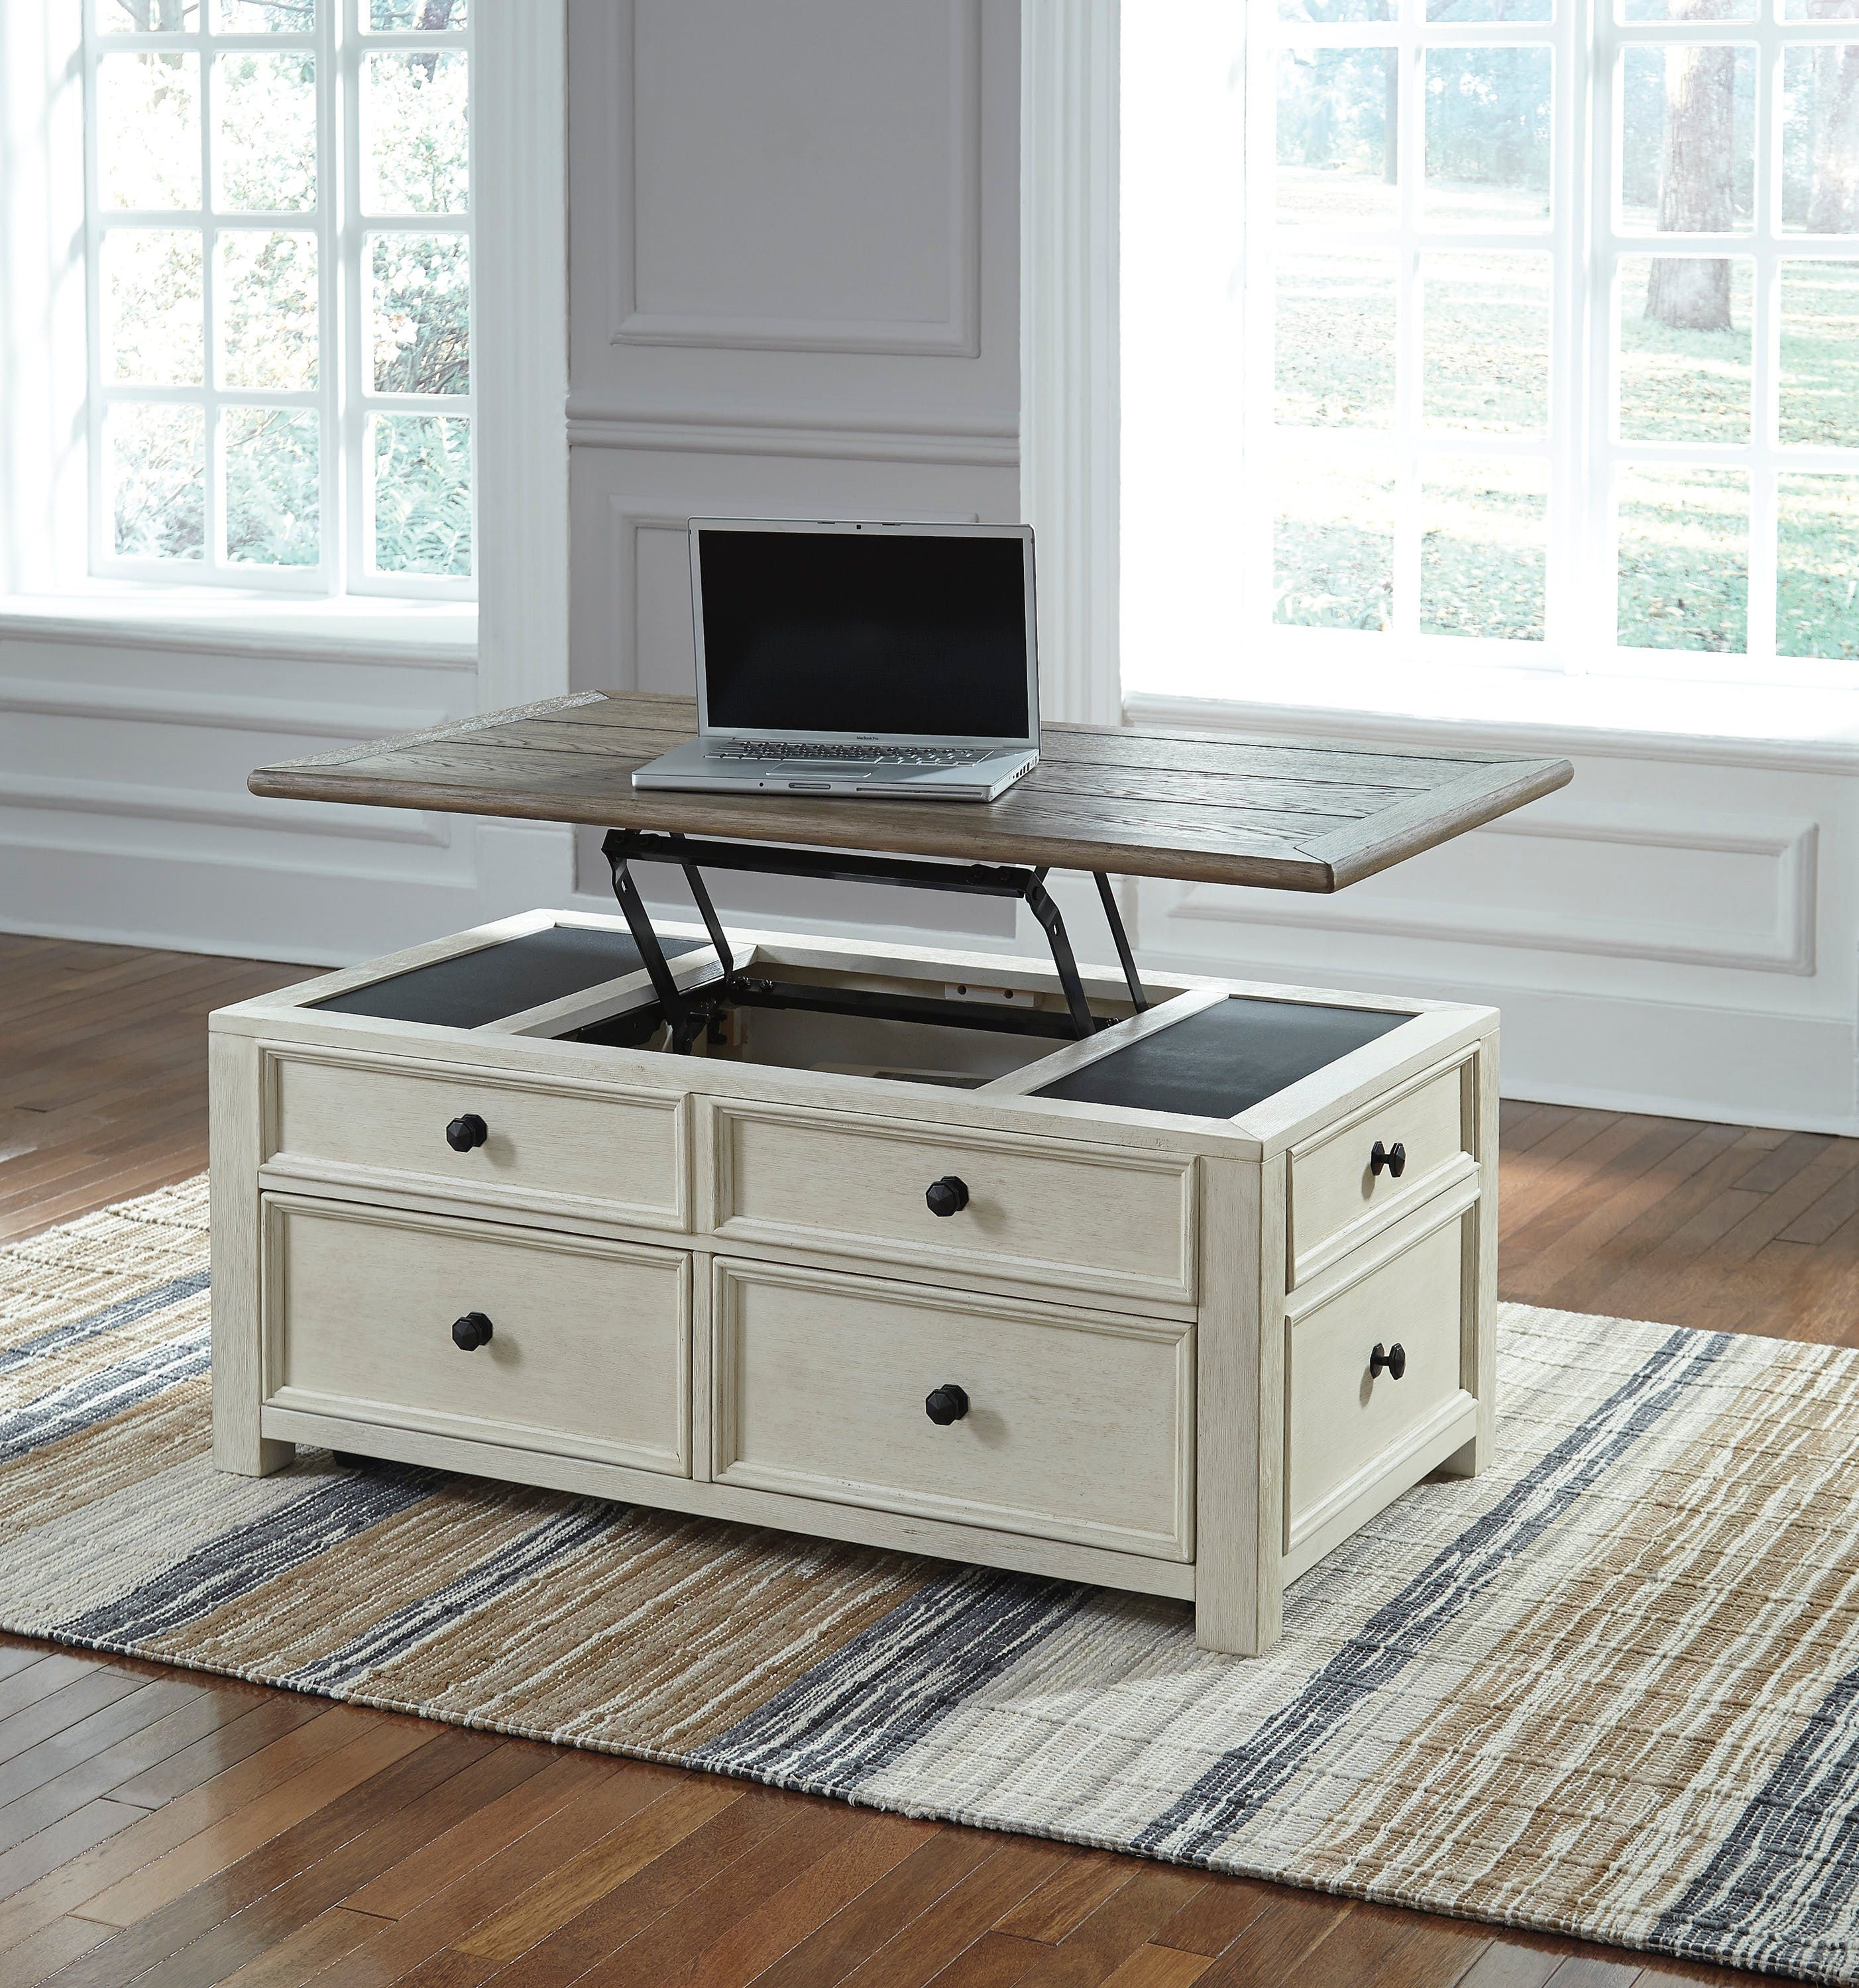 Bolanburg Coffee Table with Lift Top Wood lift top